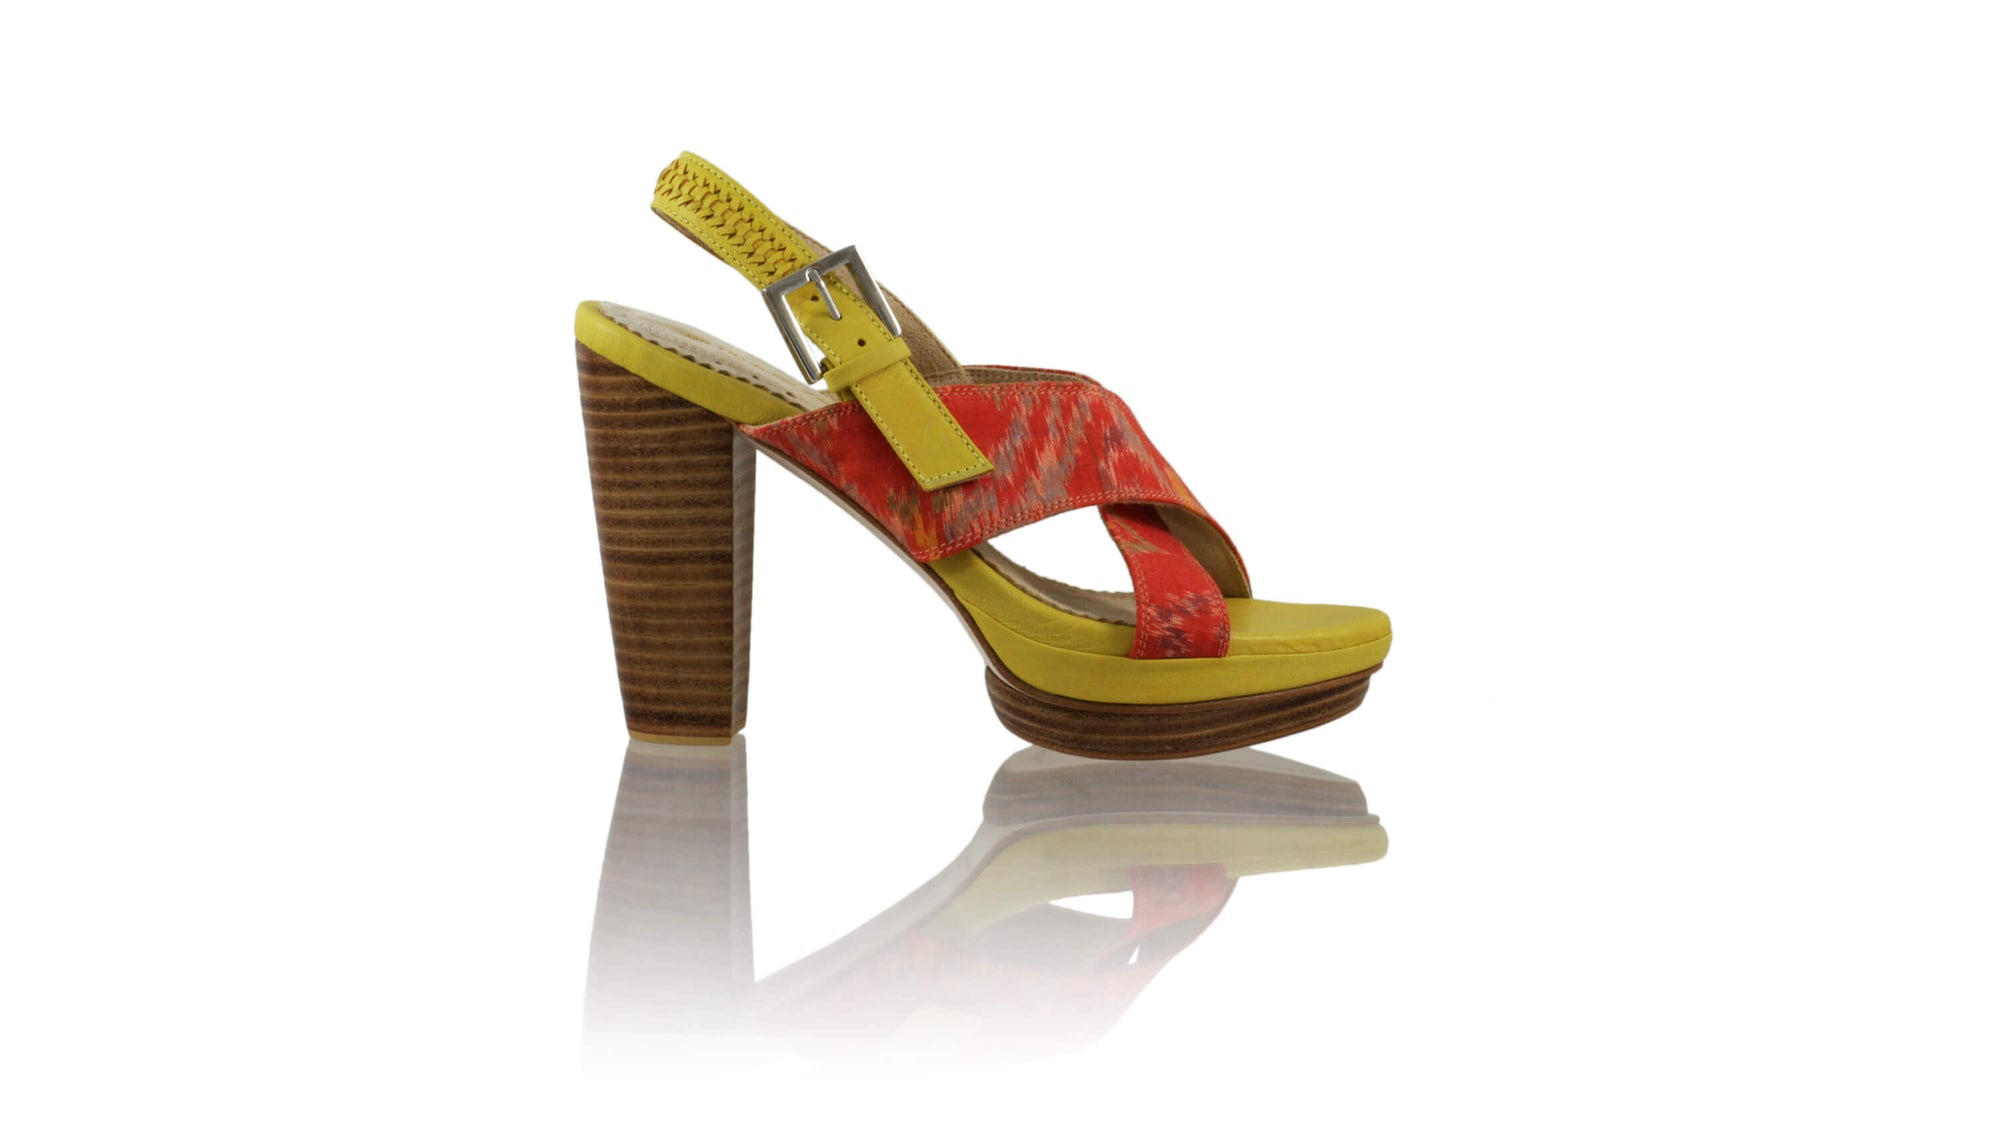 Leather-shoes-Ava 115mm WH PF - Yellow & Orange Handwoven Ikat-sandals higheel-NILUH DJELANTIK-NILUH DJELANTIK